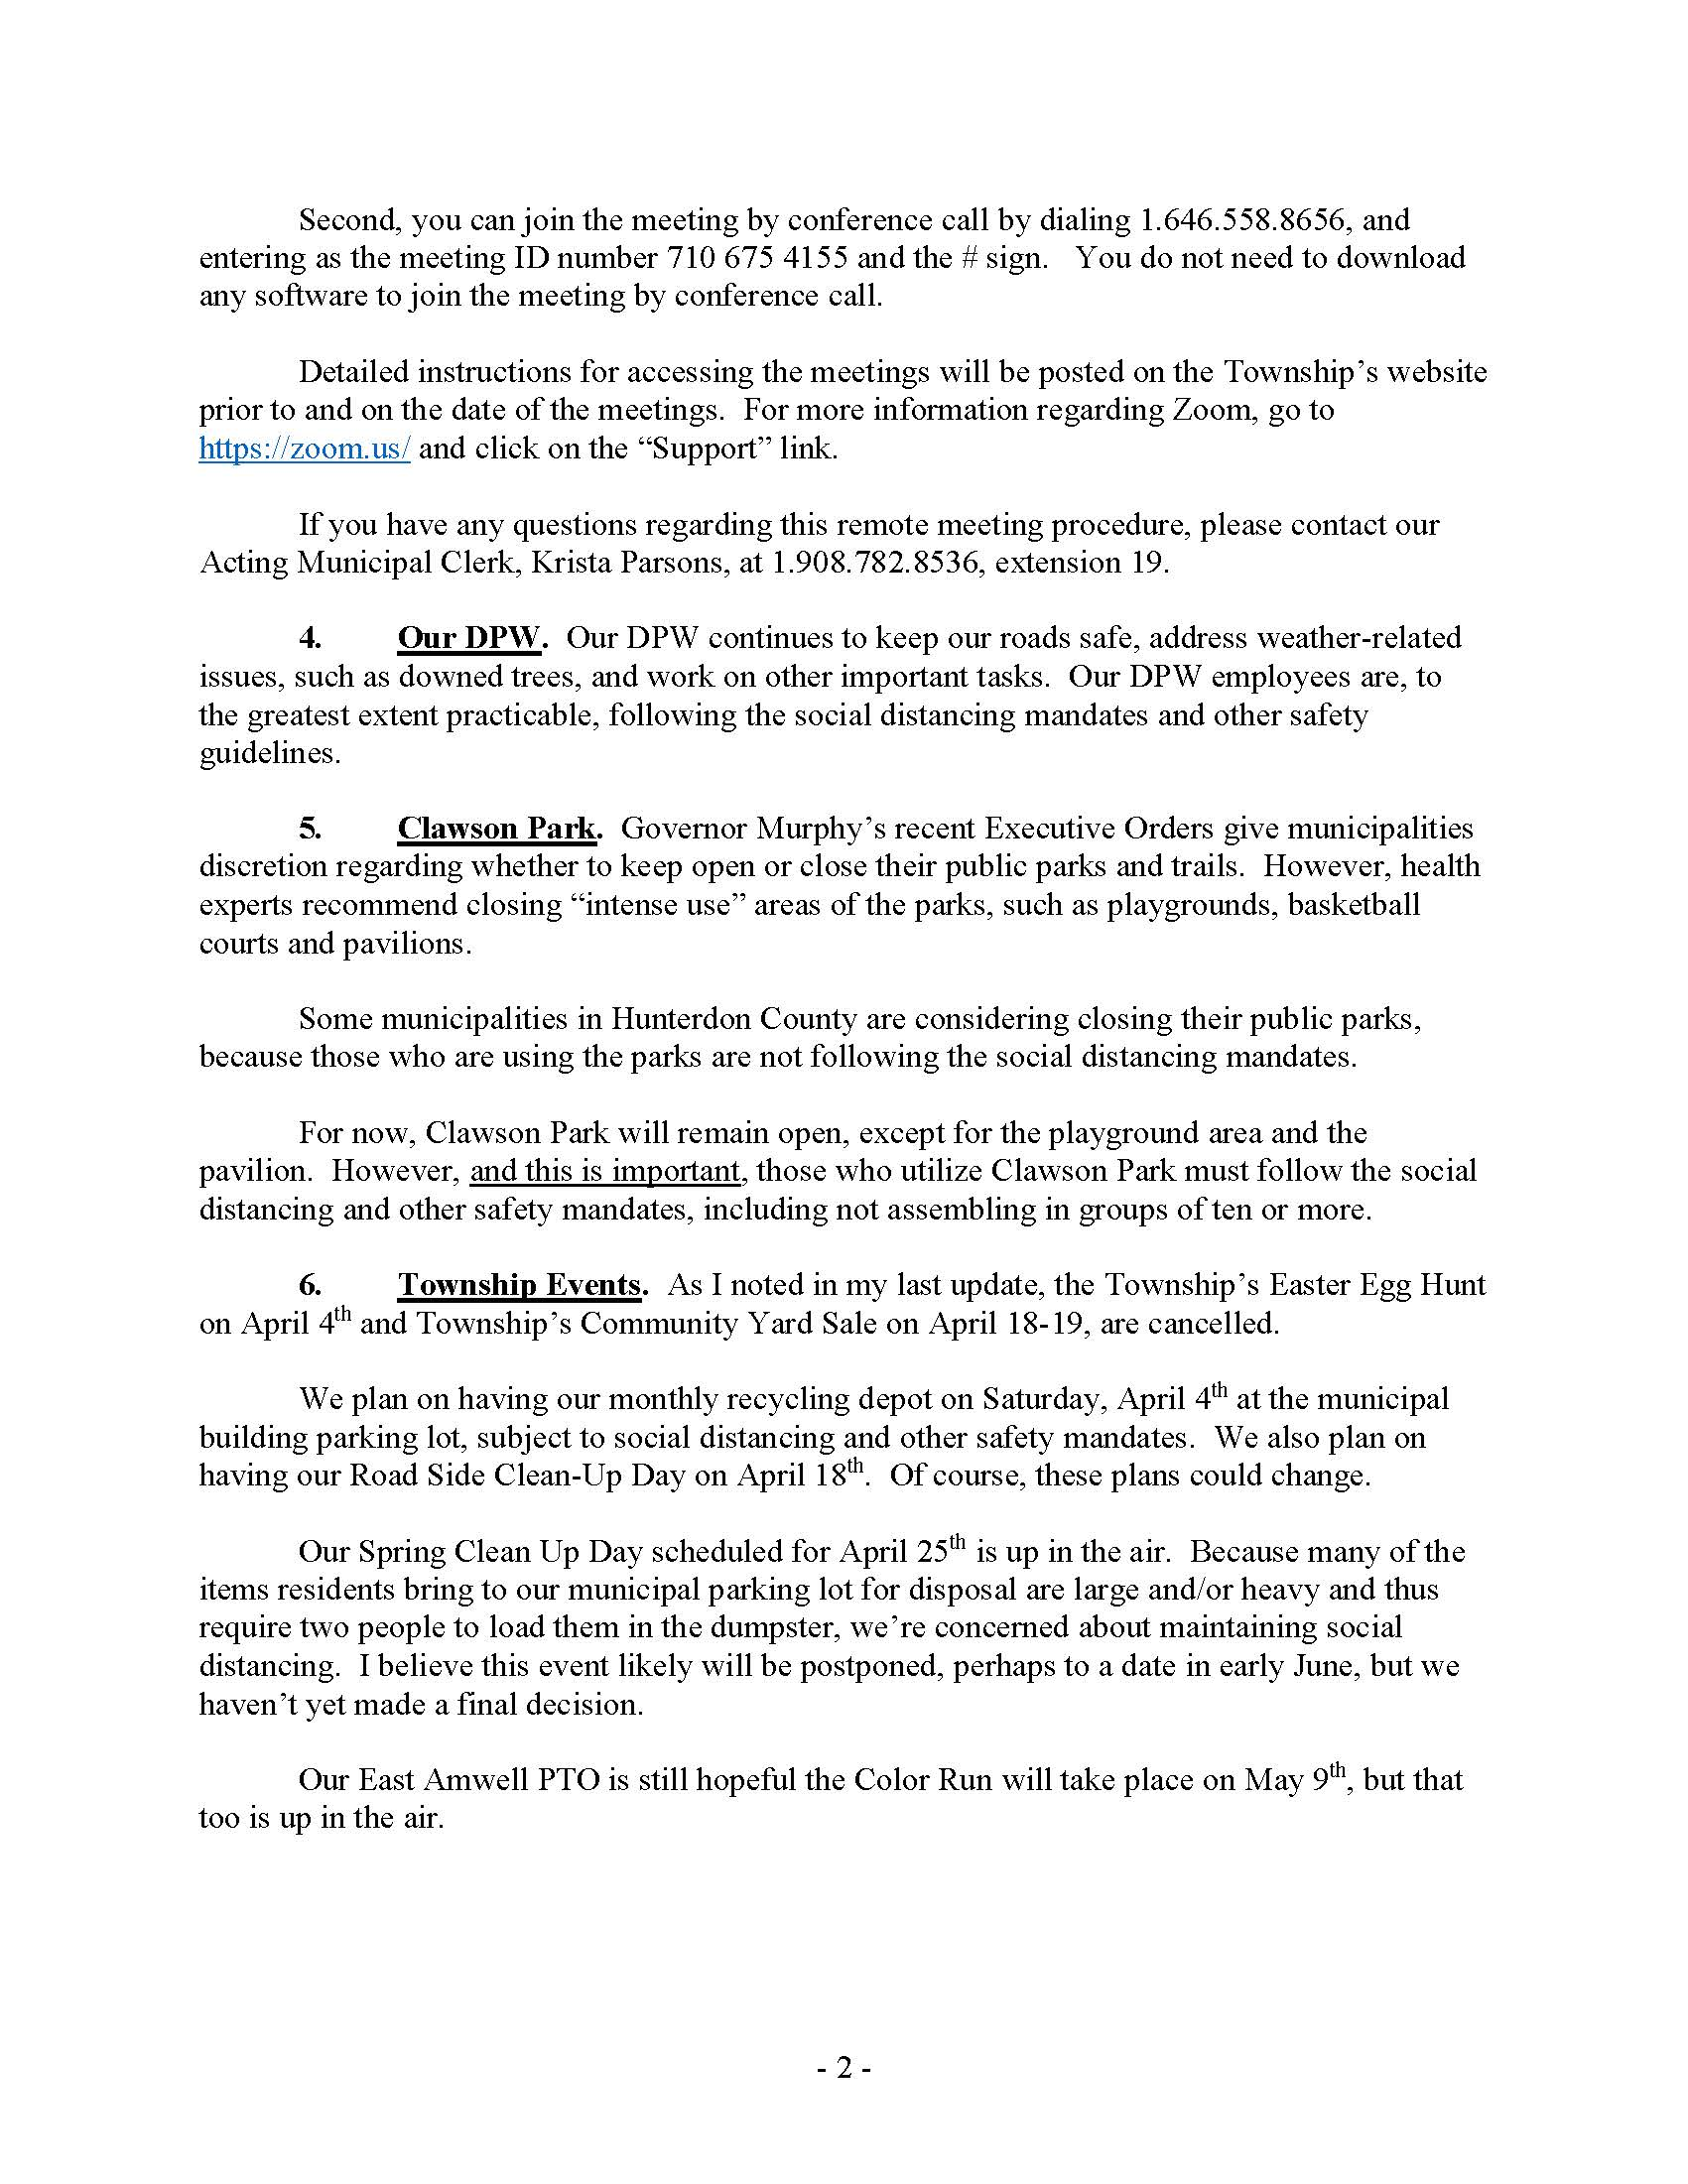 RAW (East Amwell)_  3_28_2020 Update to Residents re COVID-19 Matters (1)_Page_2